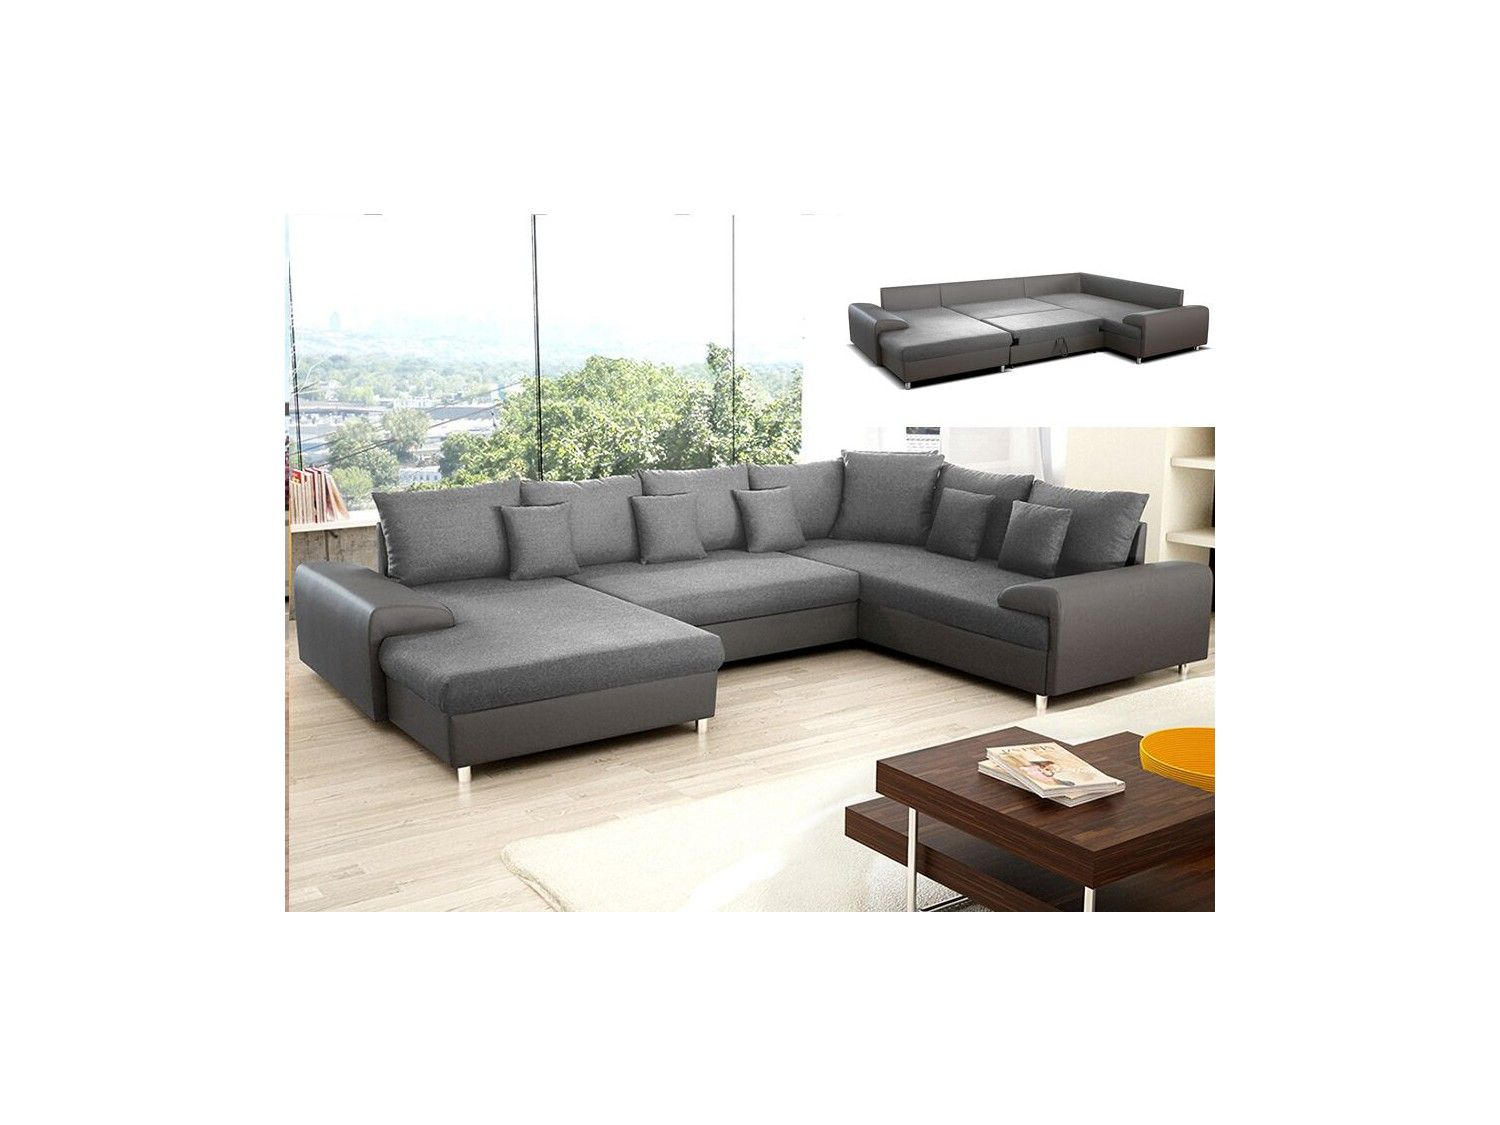 xxl mbel online kaufen best marvellous inspiration otto versand schn online kaufen sofa in u. Black Bedroom Furniture Sets. Home Design Ideas